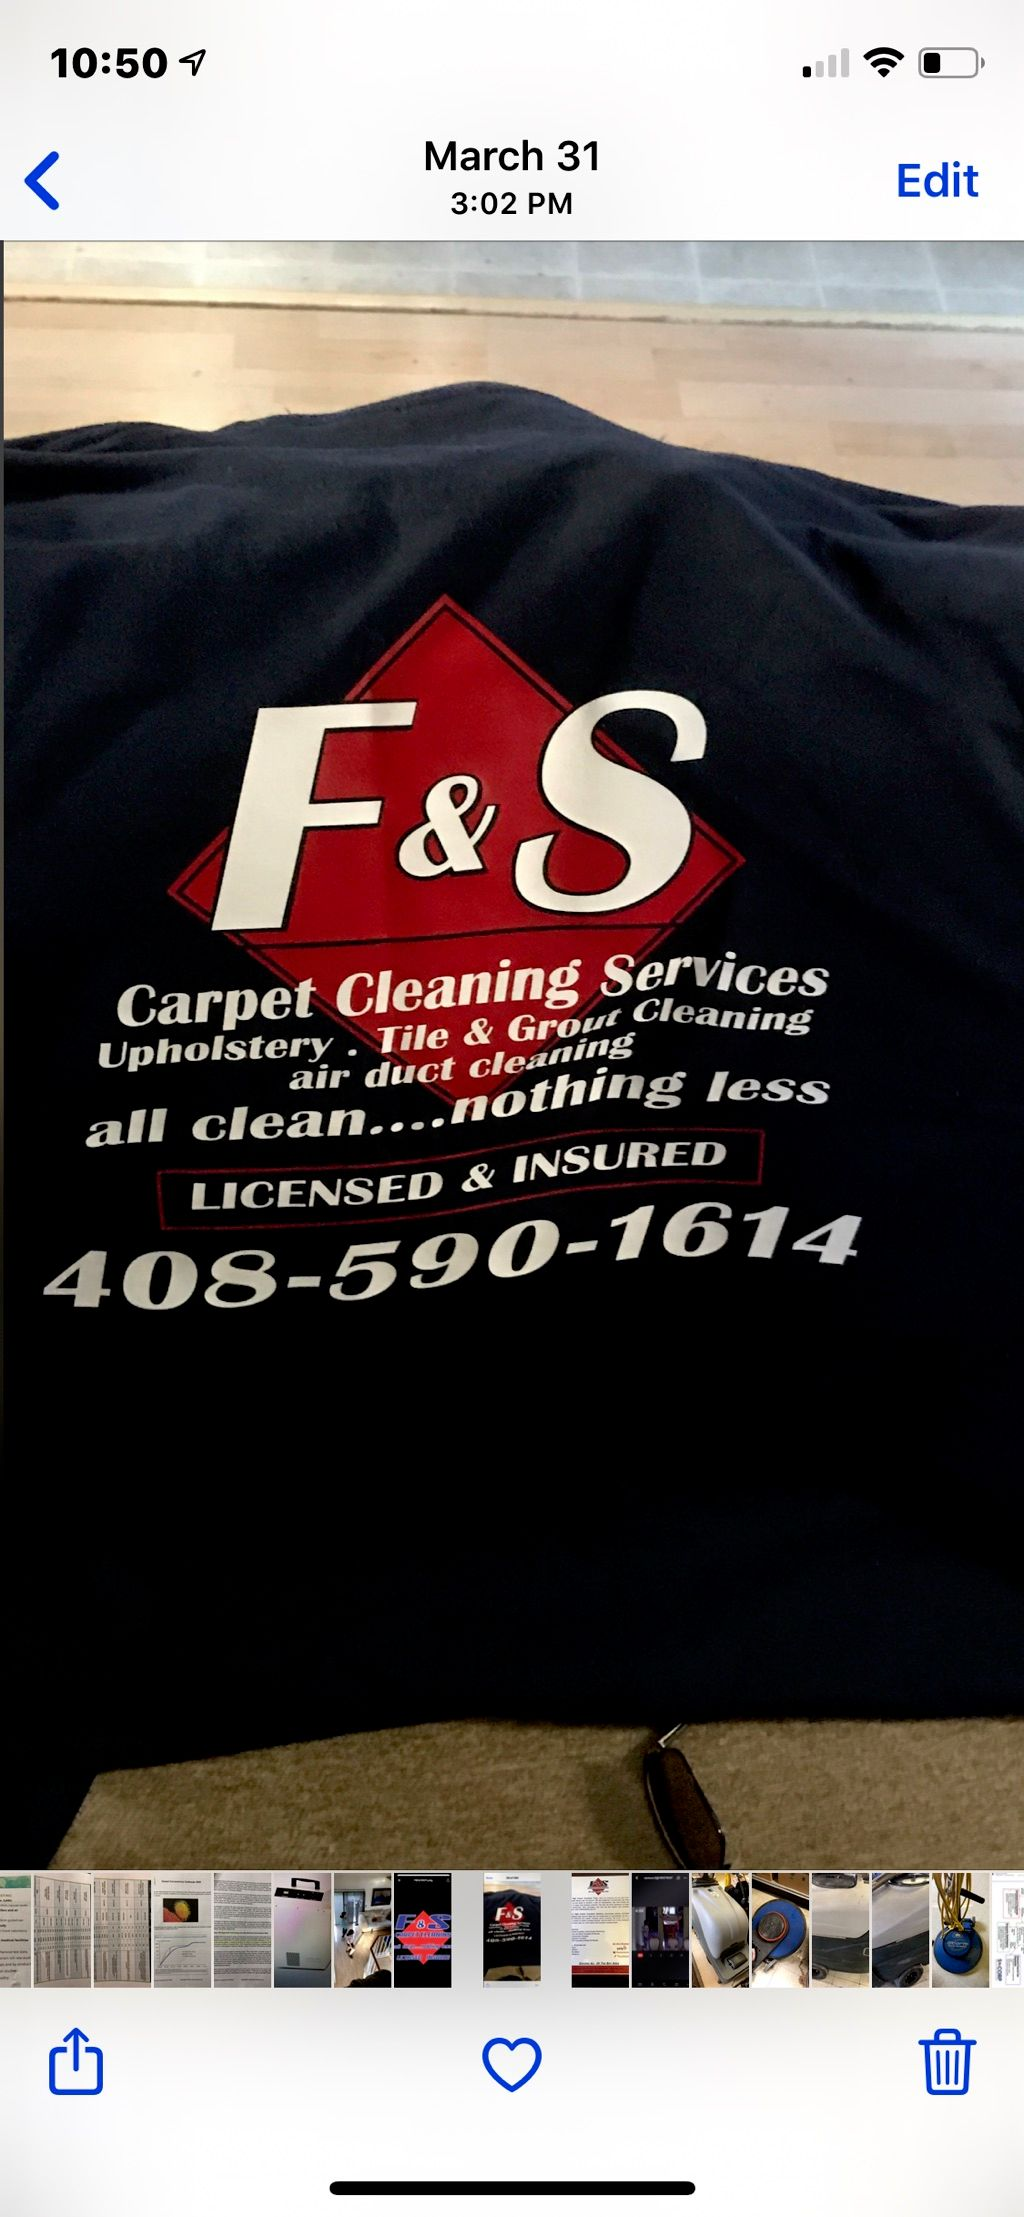 F&S Carpet Cleaning Services